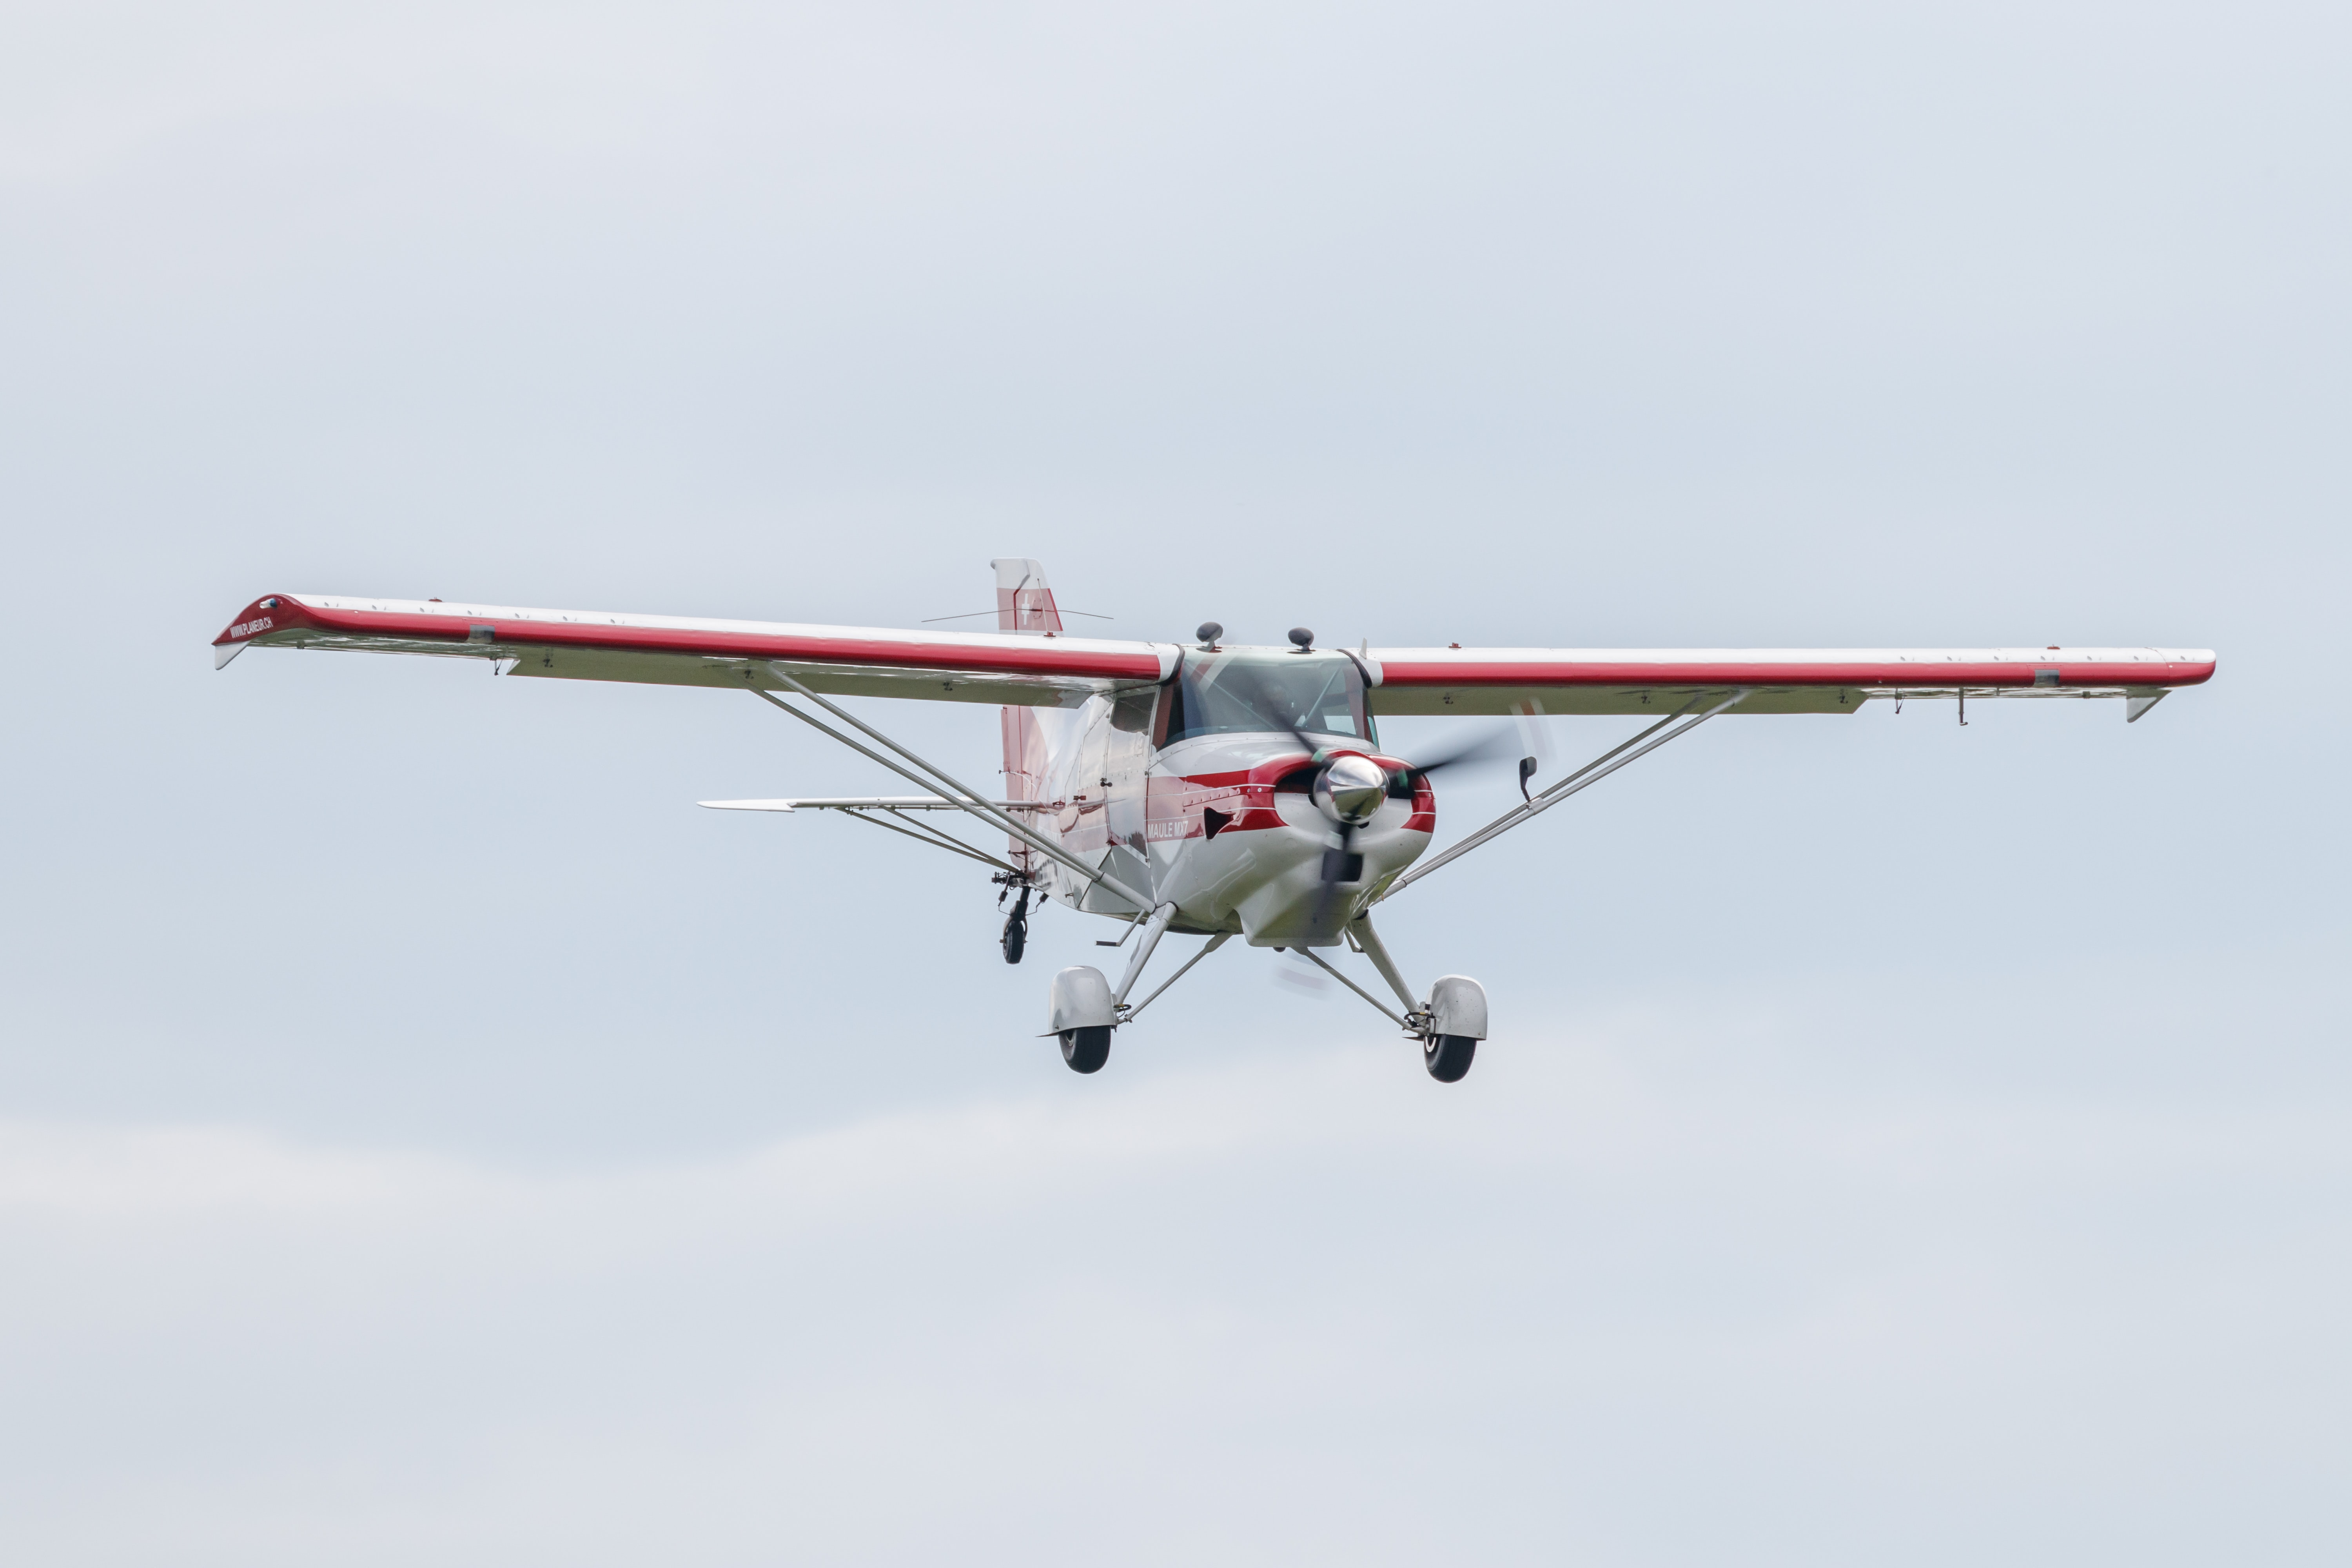 flying red and white biplane during daytime